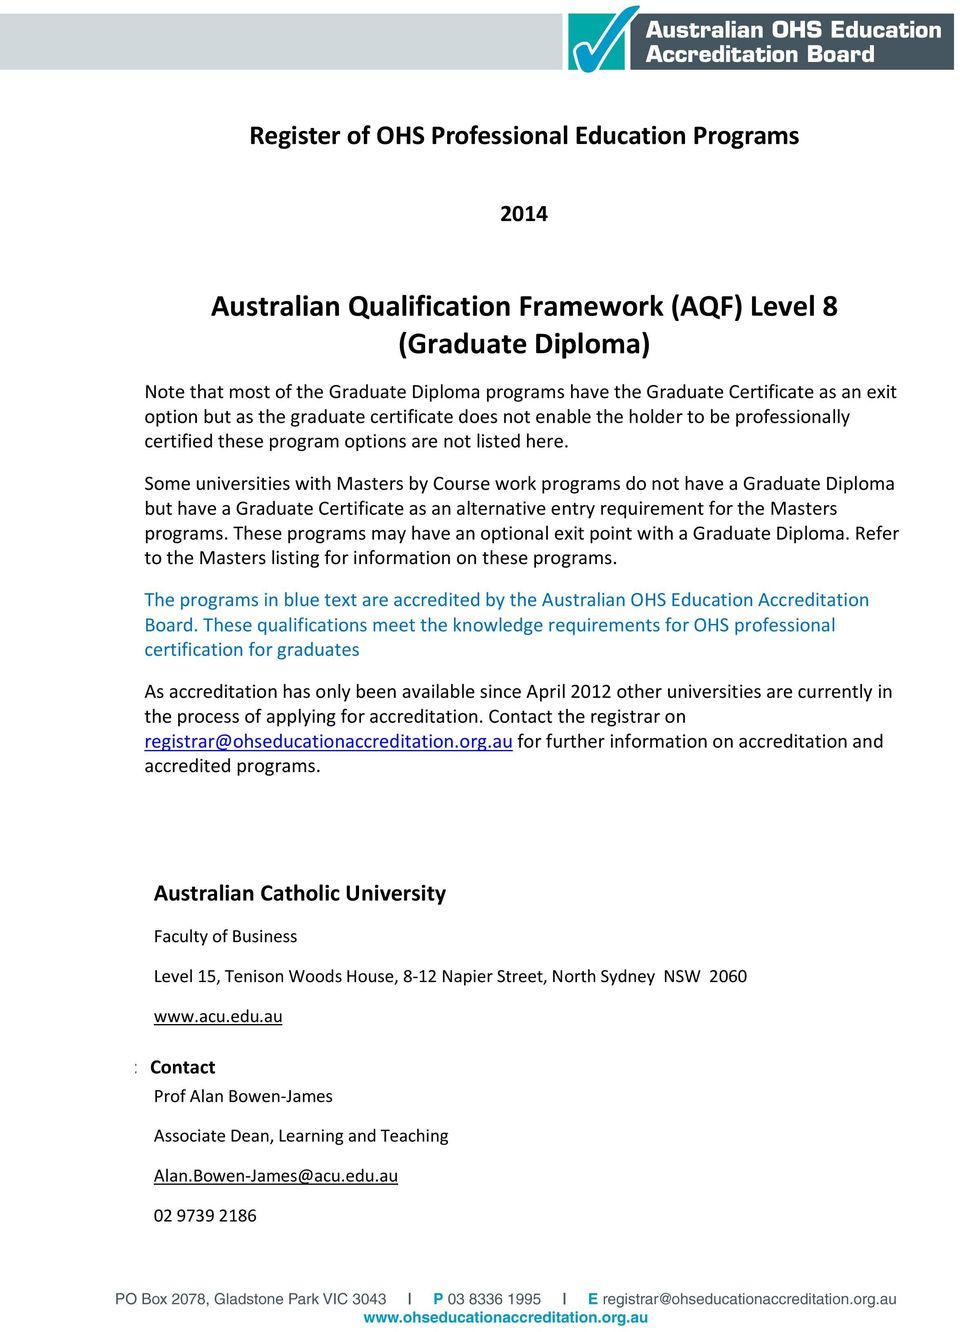 Some universities with Masters by Course work s do not have a Graduate Diploma but have a Graduate Certificate as an alternative entry requirement for the Masters s.